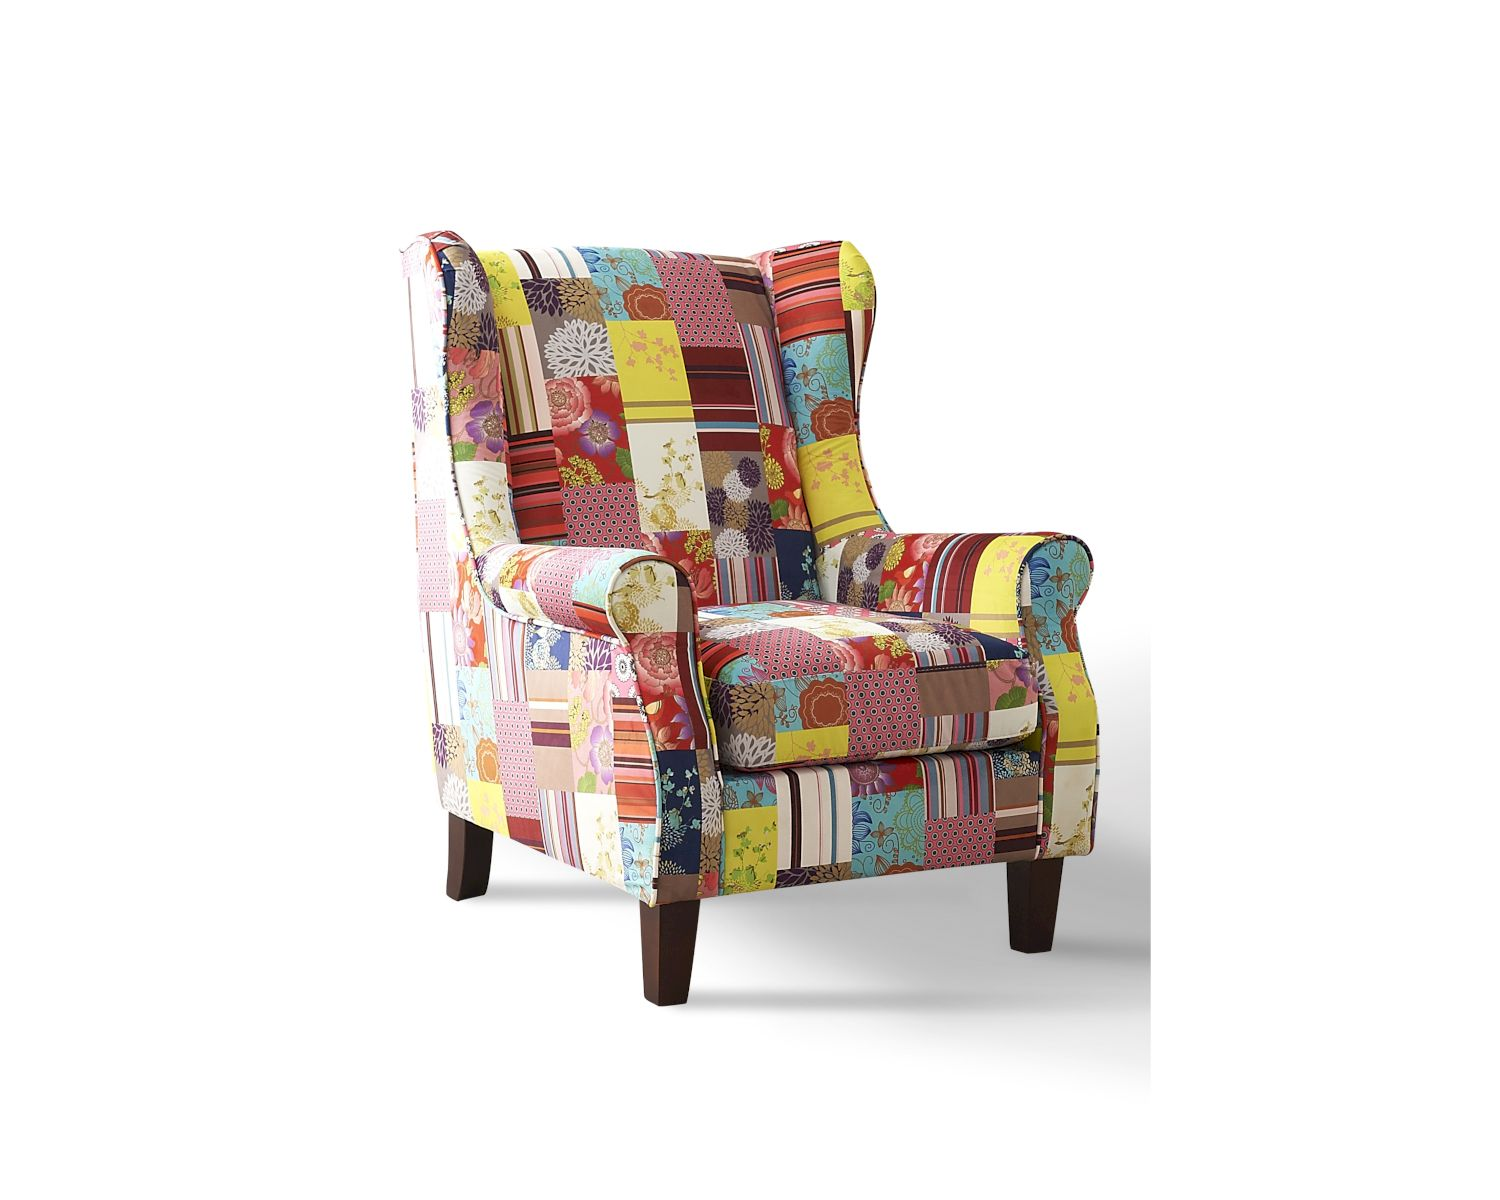 Sessel Patchwork Sit Ohrensessel Patchwork